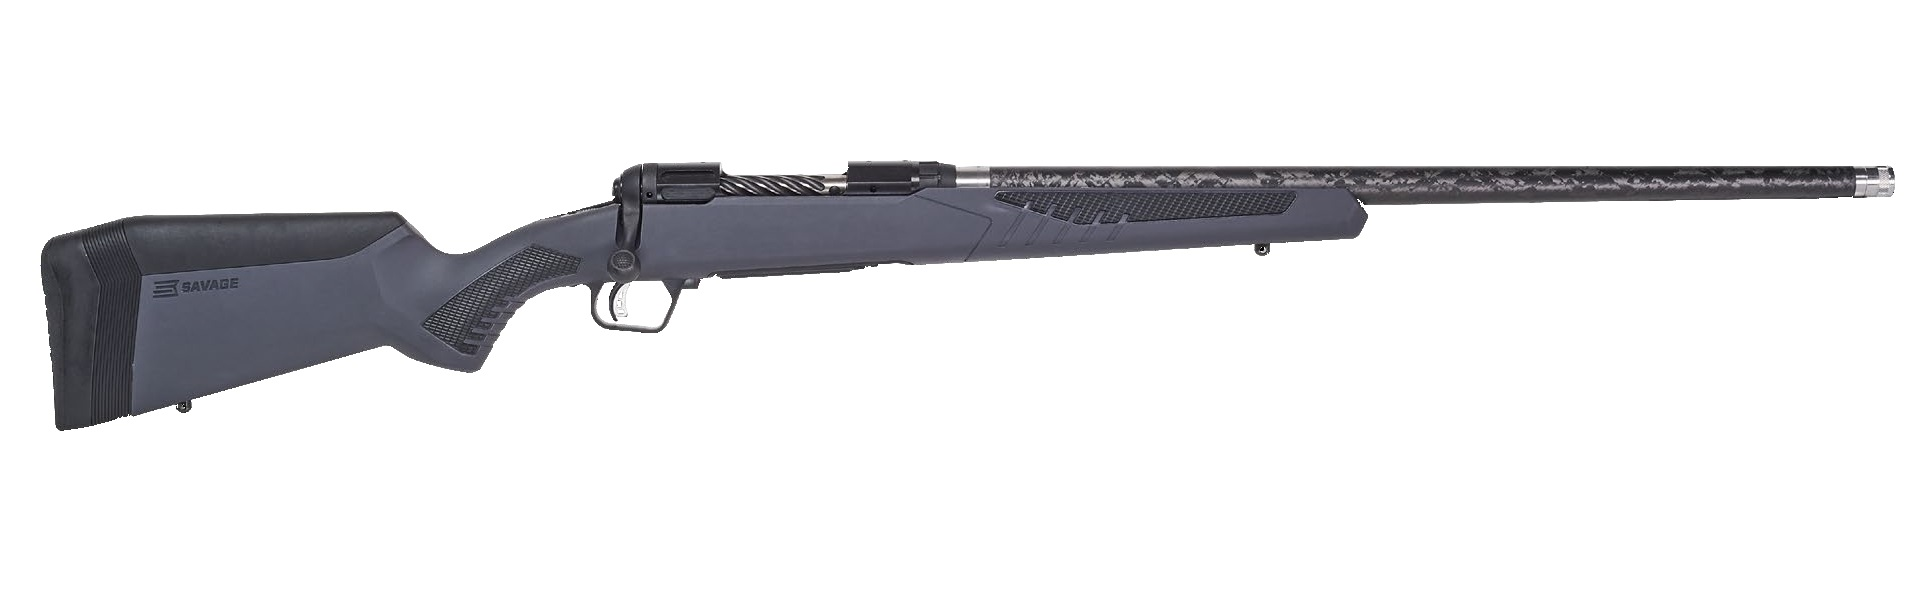 Savage Arms 110 Ultralite 308 Win